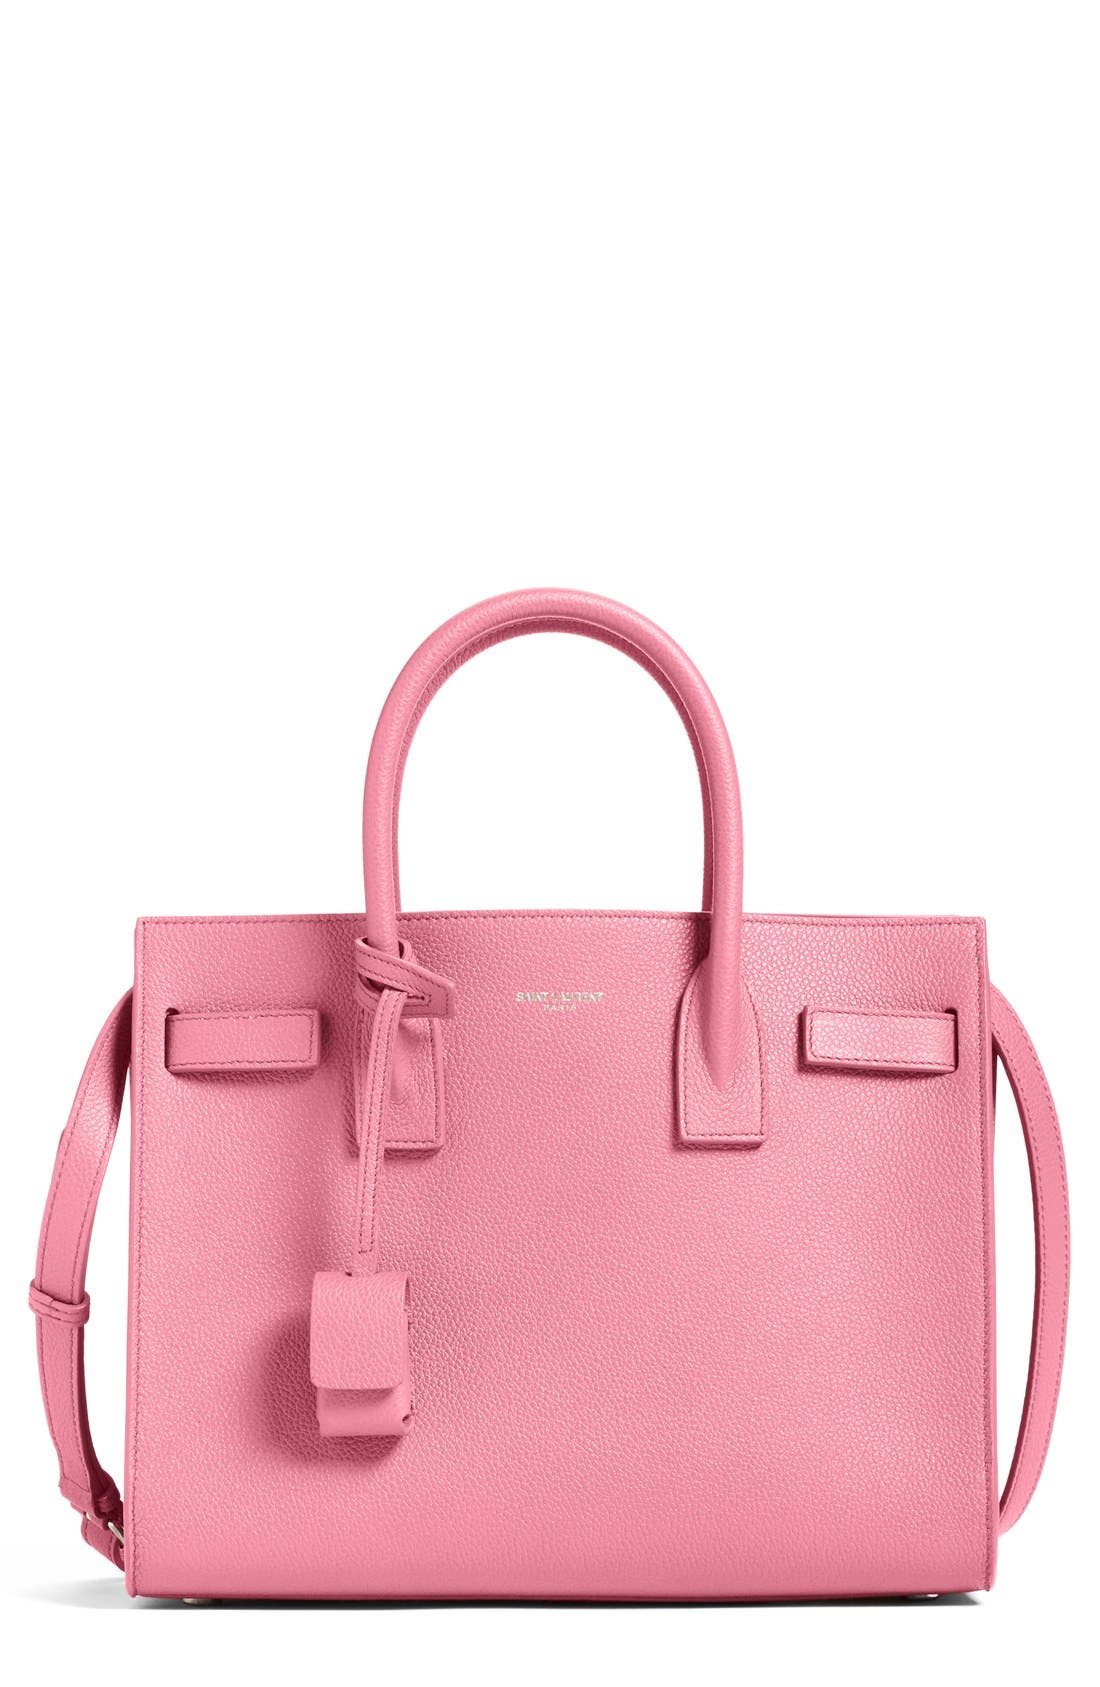 'Baby Sac de Jour' Bonded Leather Tote,                         Main,                         color, Pink